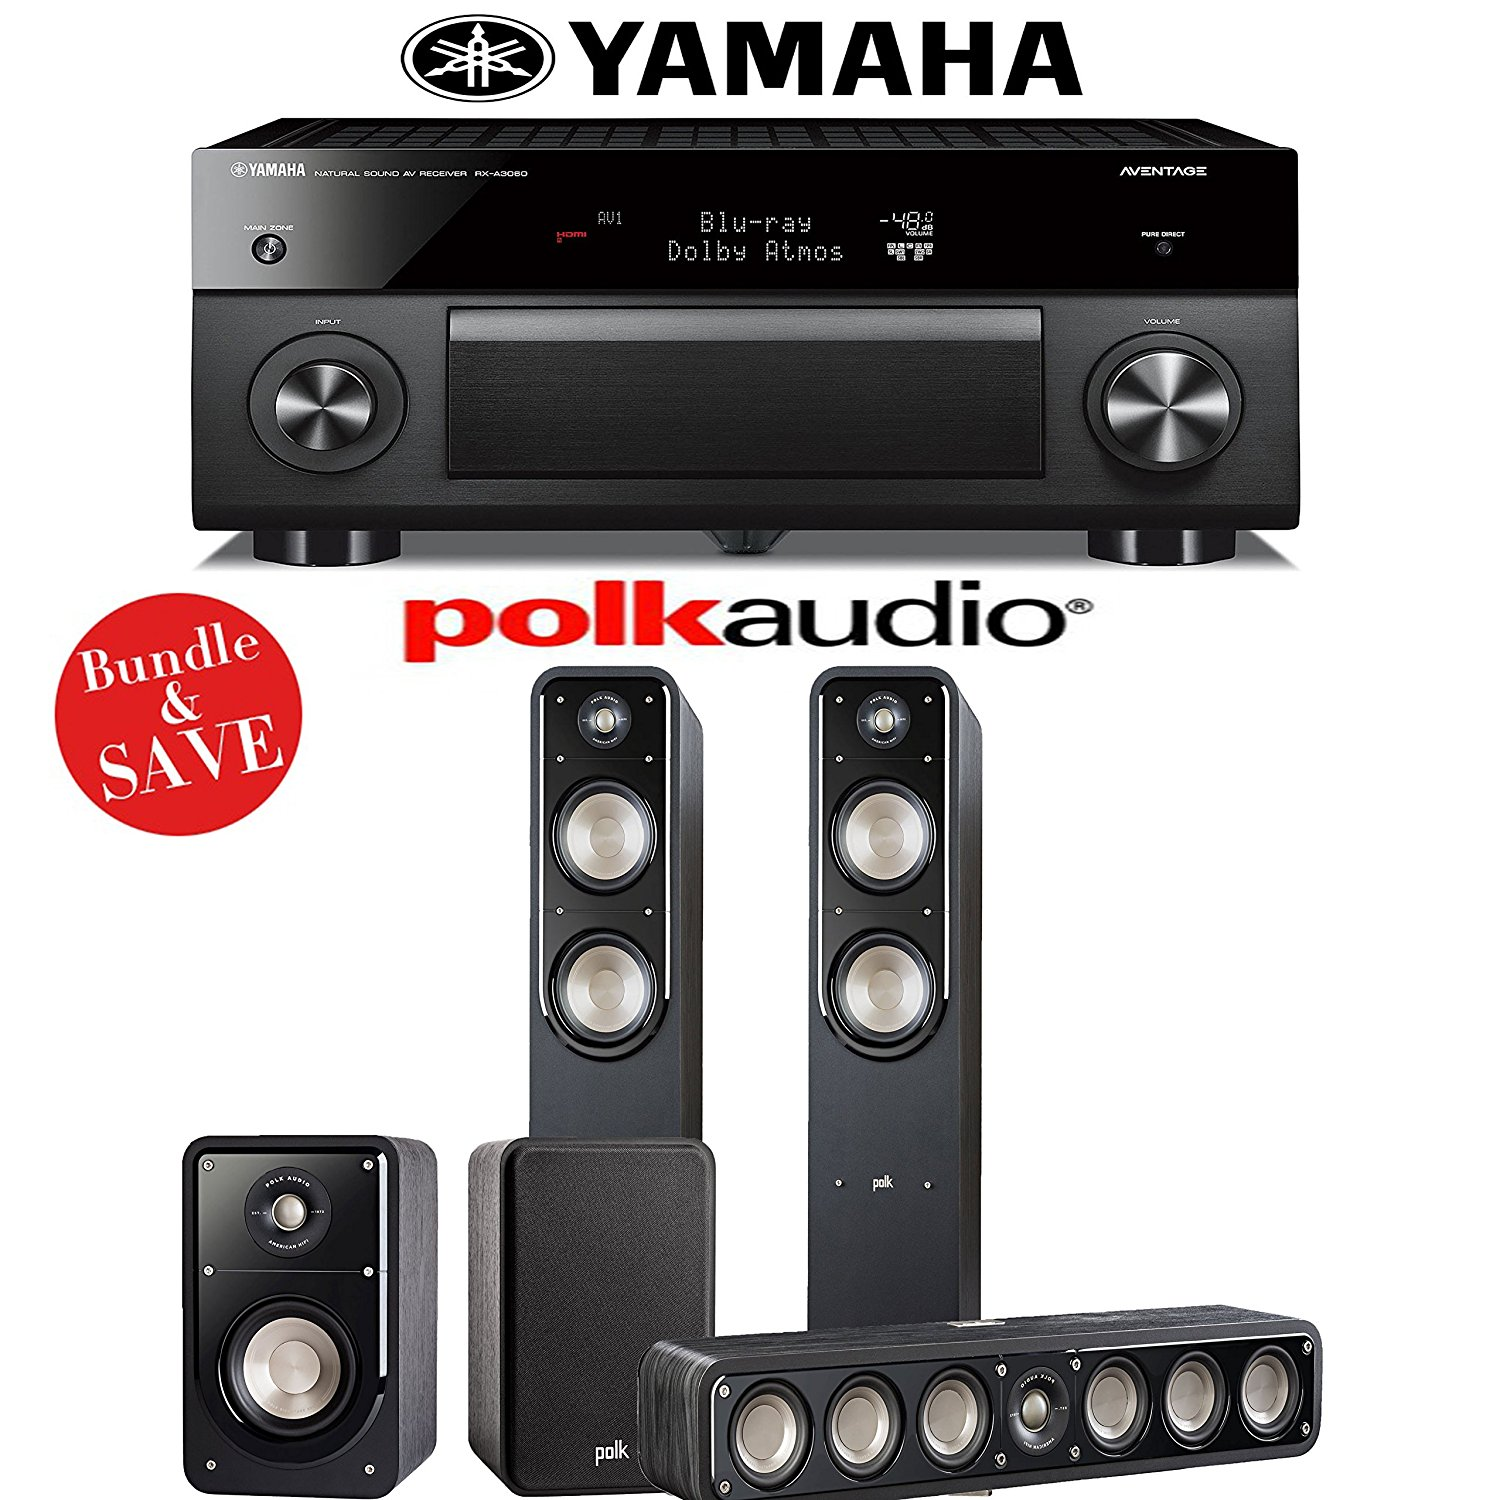 Yamaha RX-A3060BL AVENTAGE 11.2-Channel Network A/V Receiver + Polk Audio S55 + Polk Audio S35 + Polk Audio S15 - 5.0 Home Theater Package